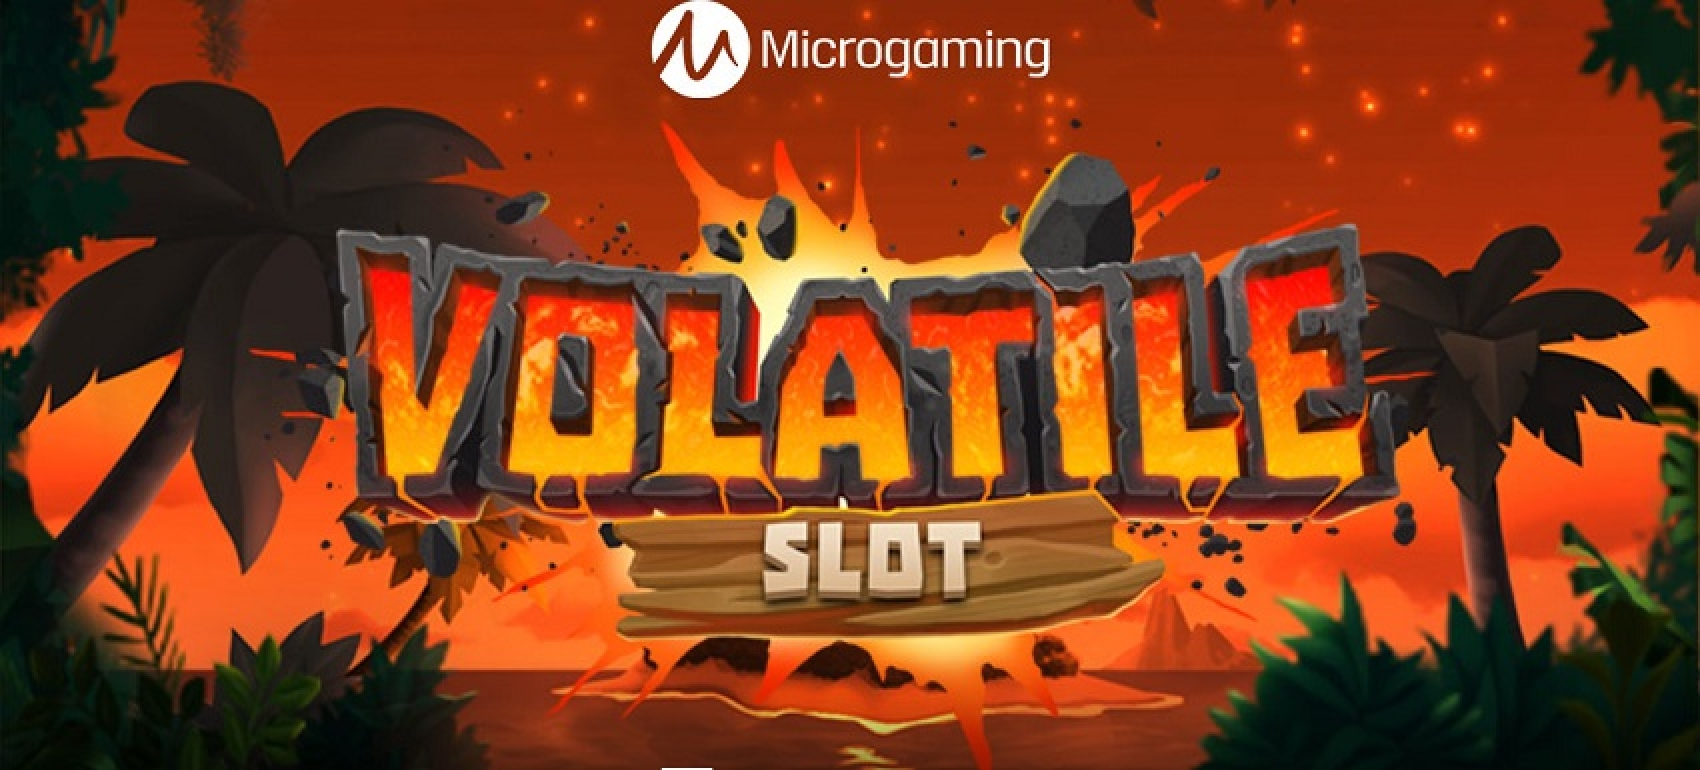 The Volatile Slot Online Slot Demo Game by Golden Rock Studios